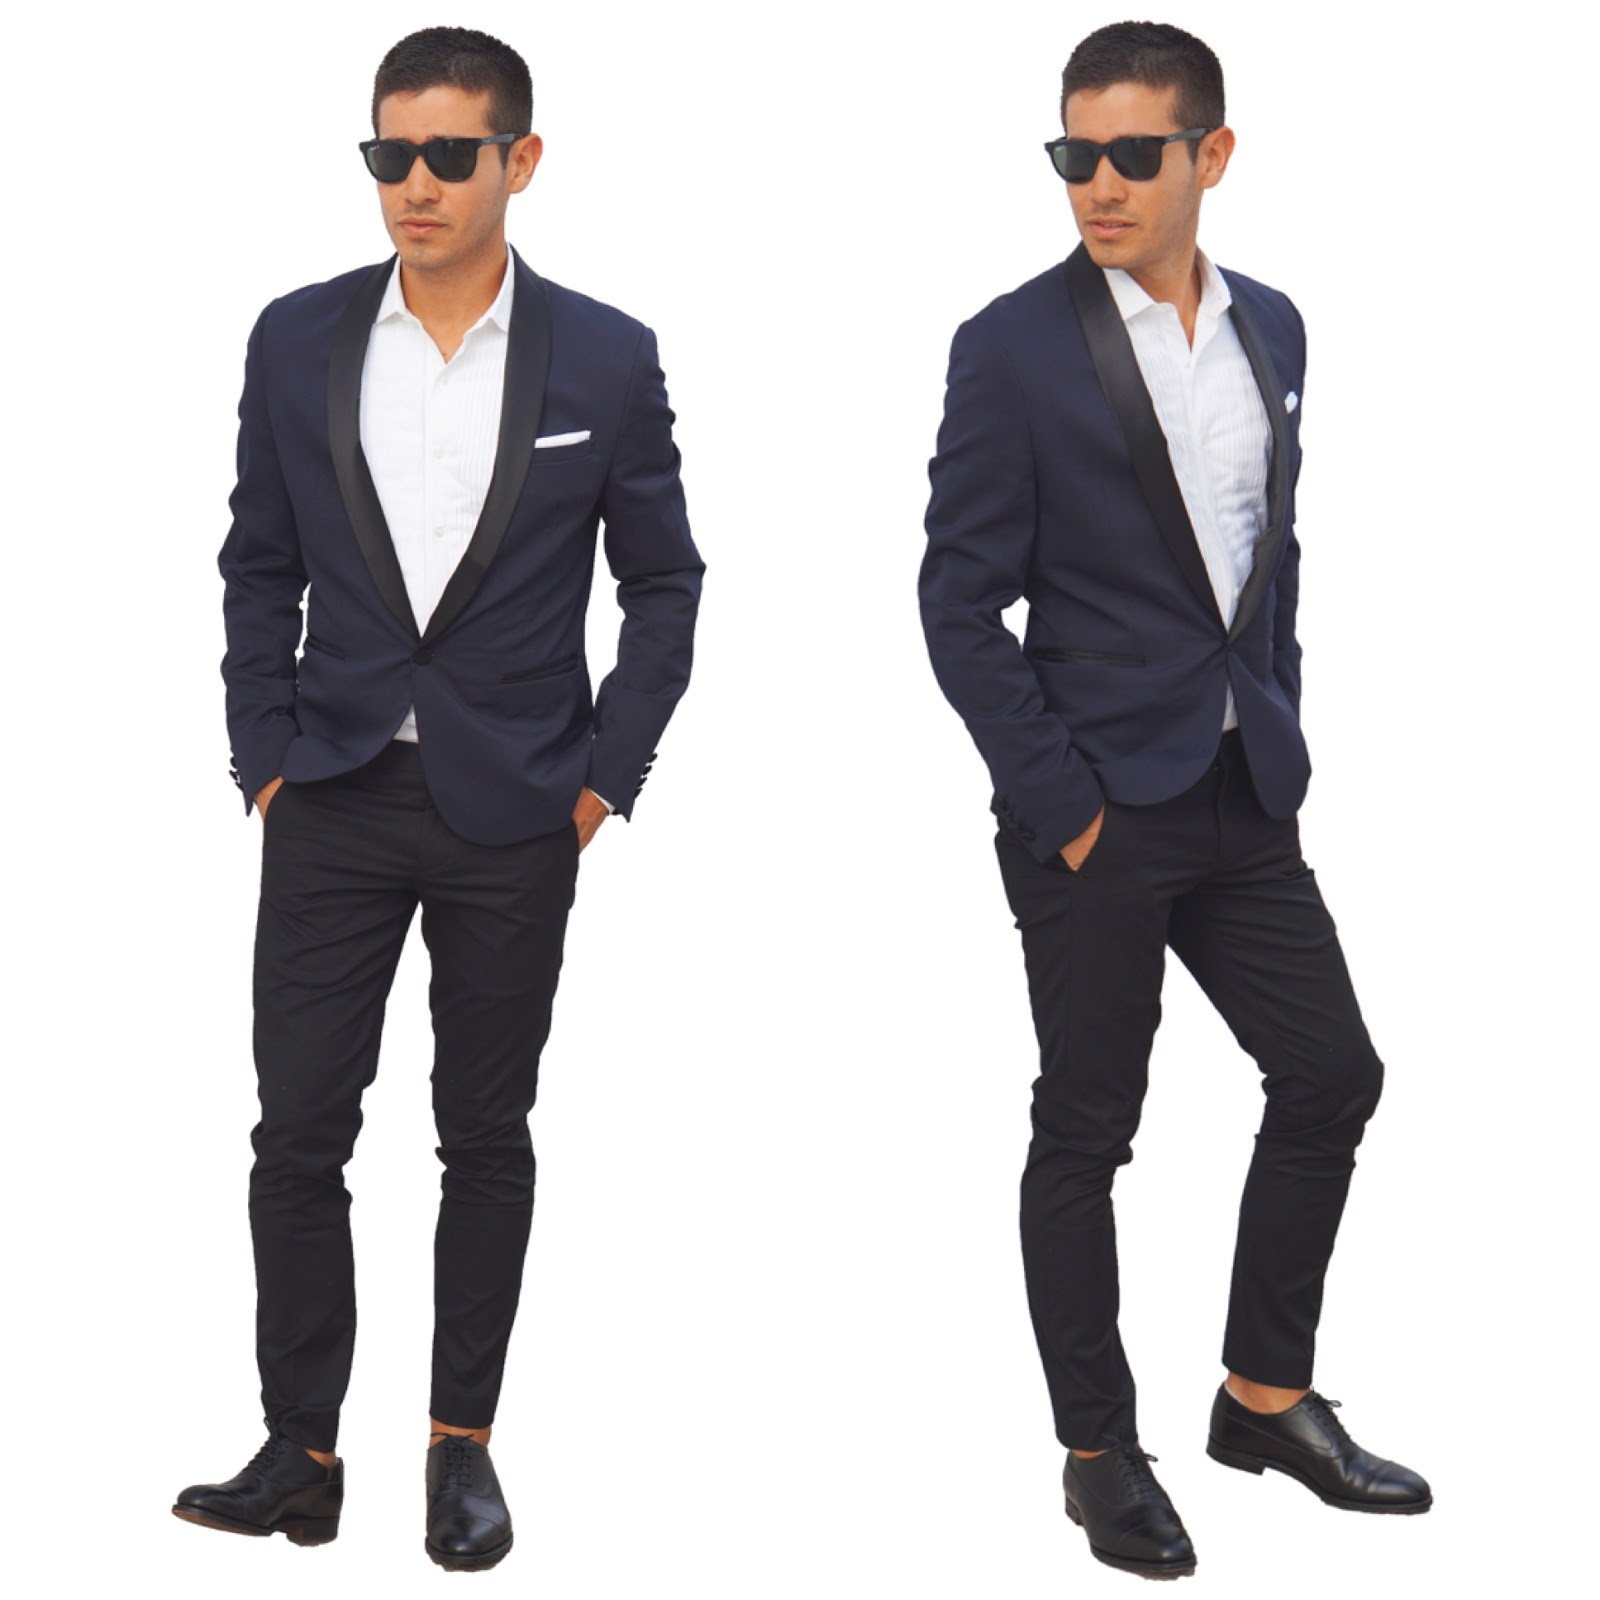 Formal-Wear - TREND STYLED • Style, Grooming, Design, and Travel ...